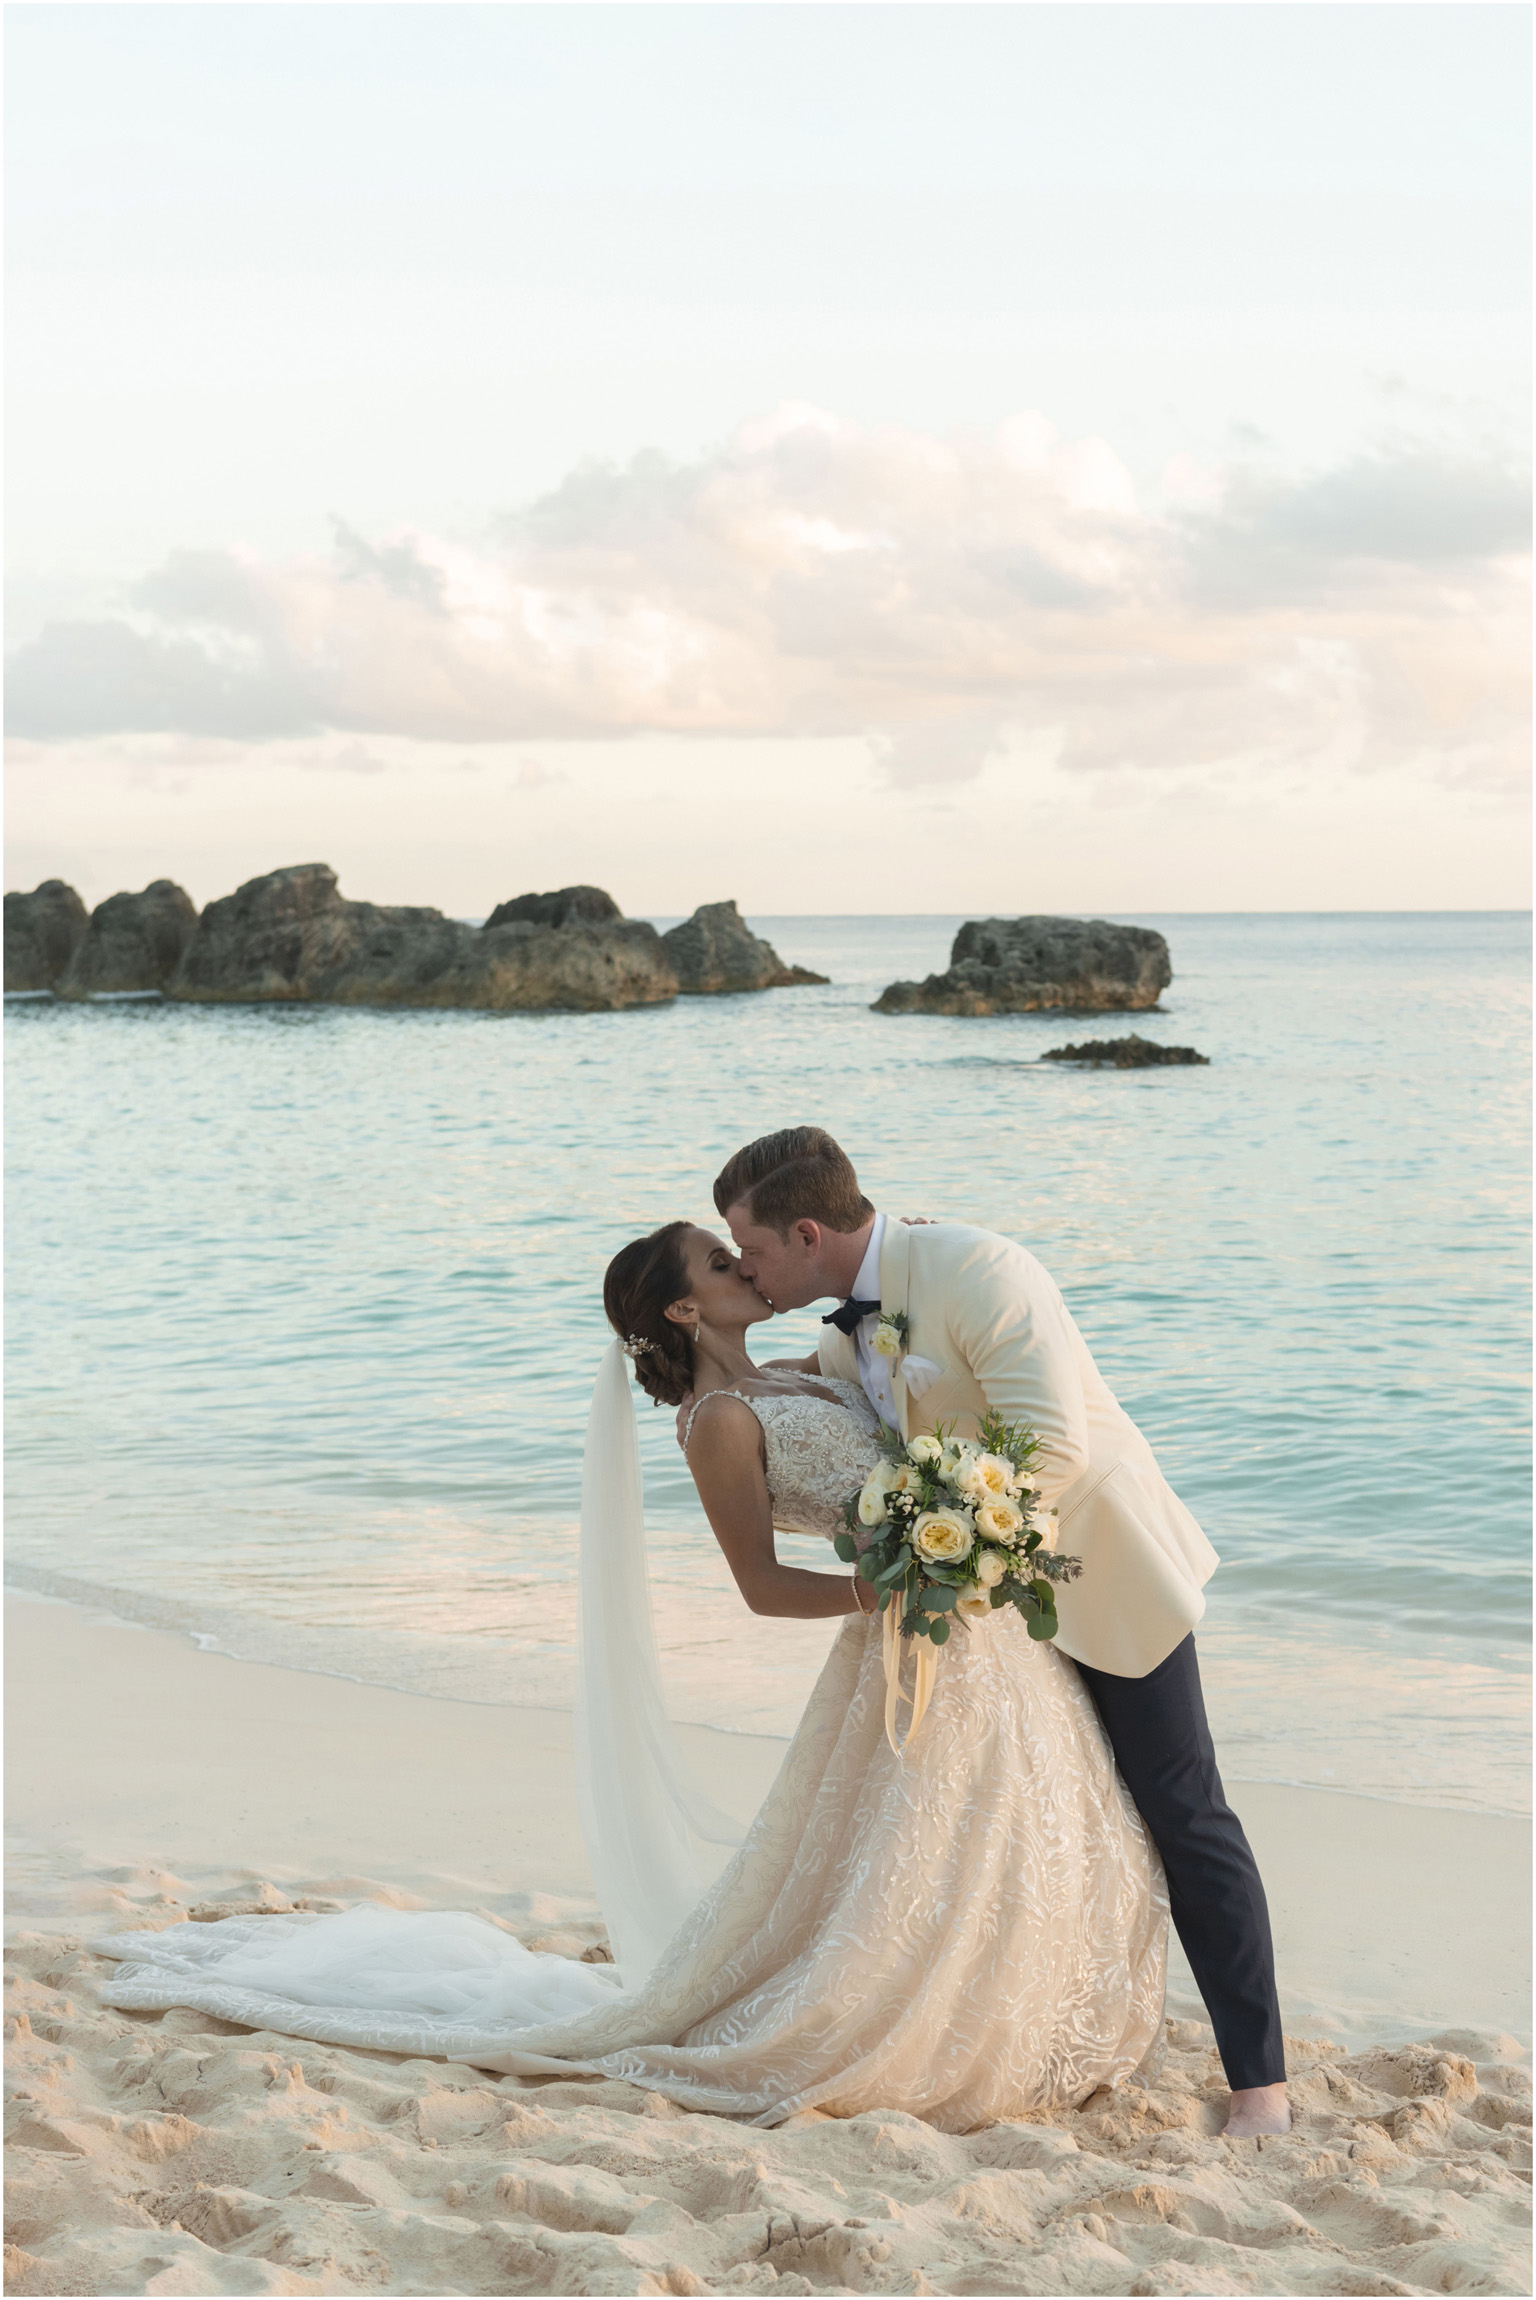 ©Fiander+Foto_Bermuda+Wedding+Photographer_The+Reefs_Taylor_Tedd_141.jpg